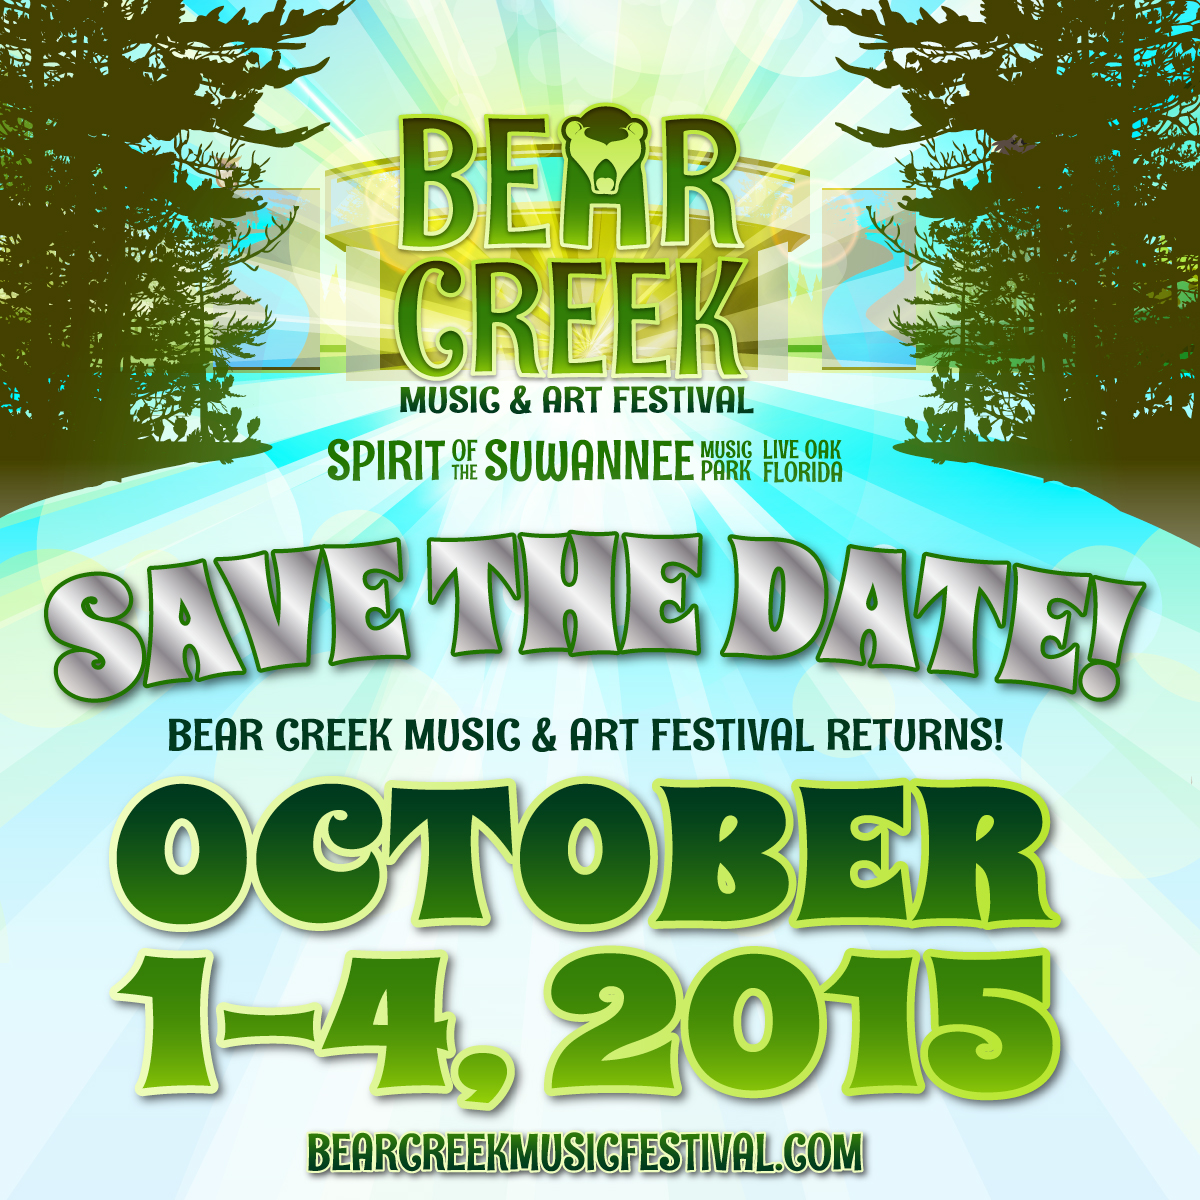 Bear Creek Music & Art Festival Announces 2015 Date